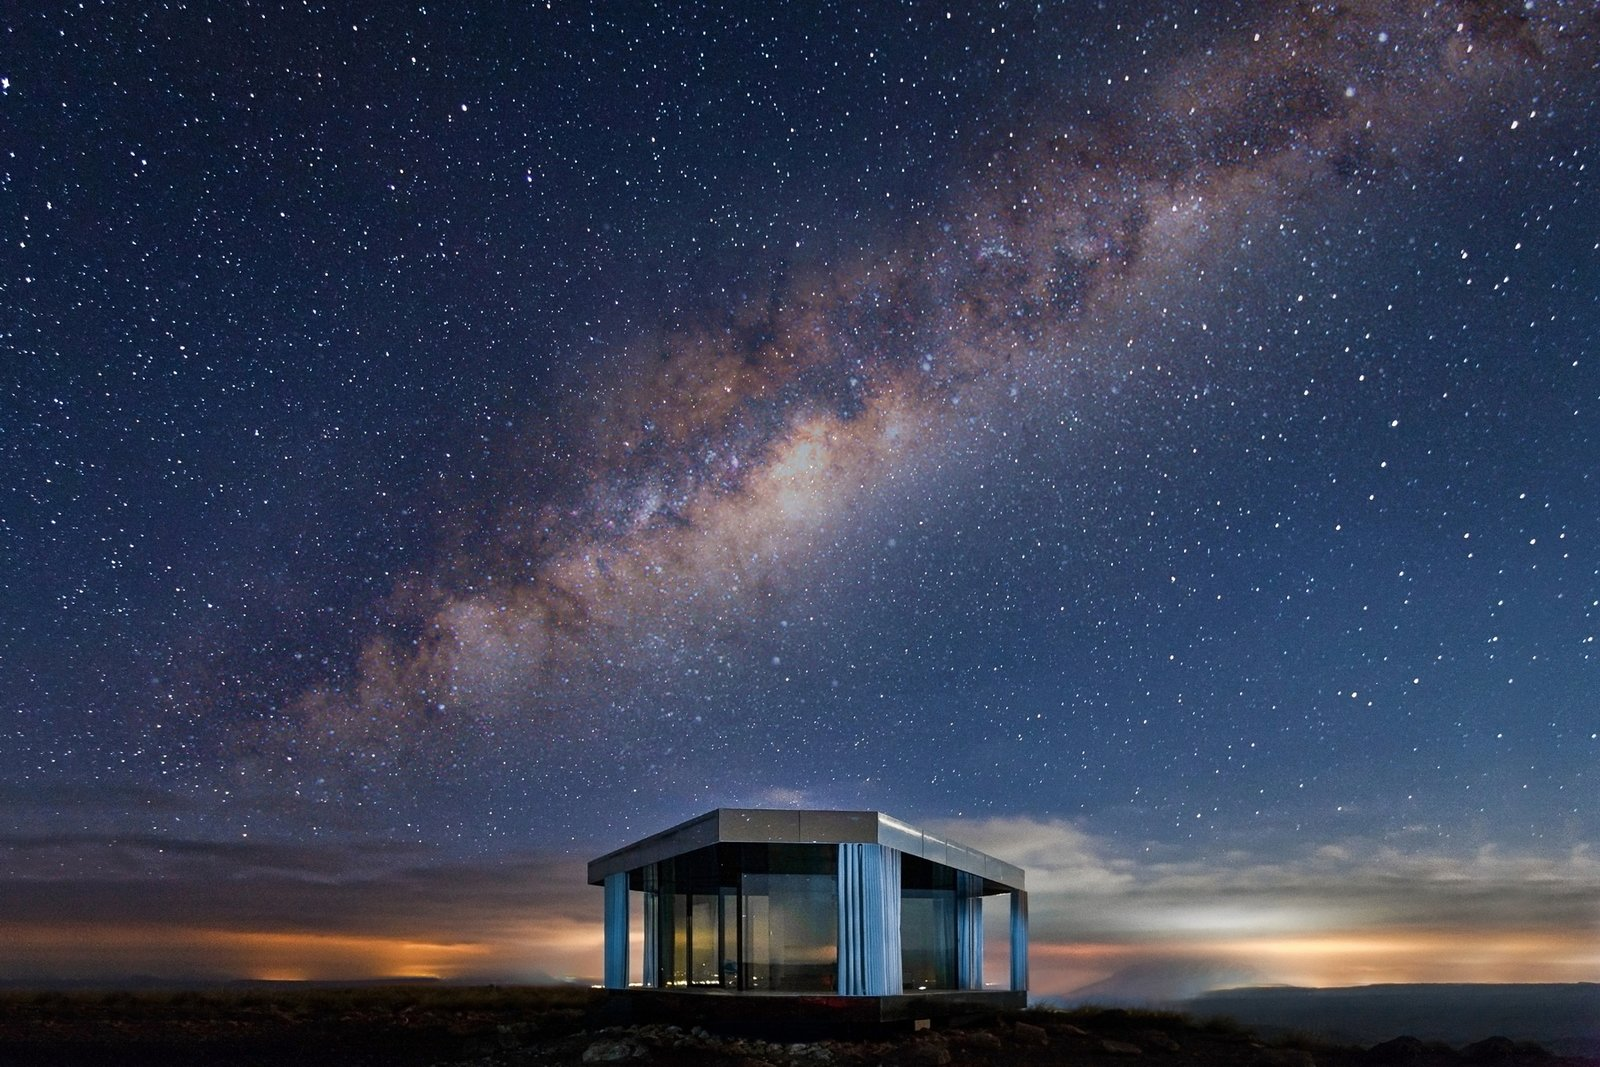 The glass home is perfectly positioned for stargazing.